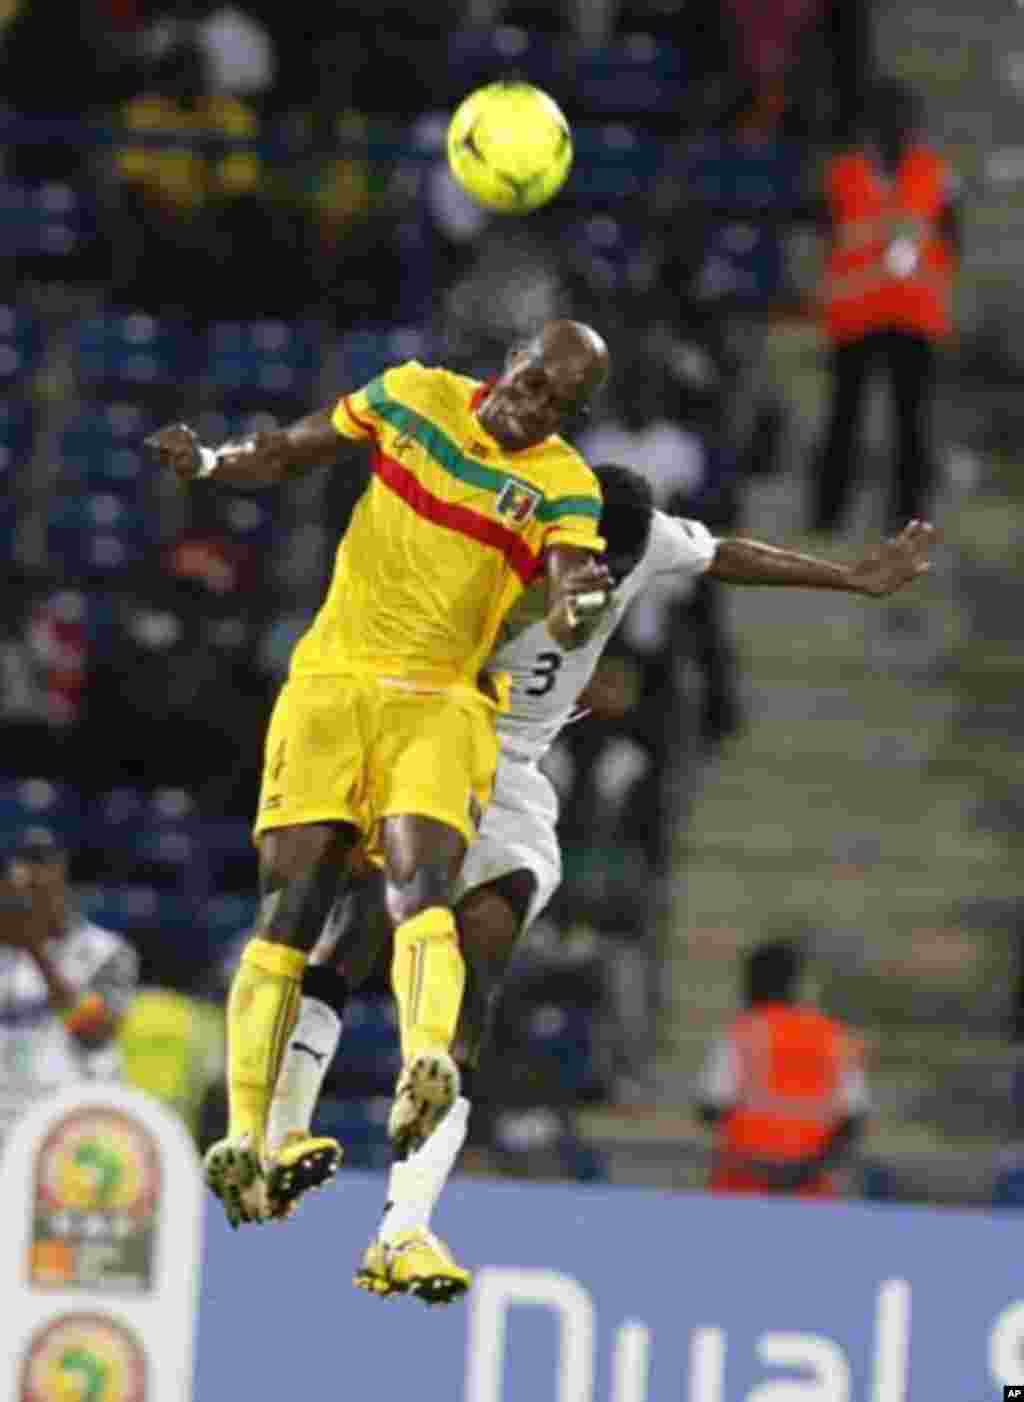 Mali's Berthe Abdoulaye Youssef (L) challenges Gyan Asamoah of Ghana during their African Cup of Nations Group D soccer match in FranceVille Stadium January 28, 2012.